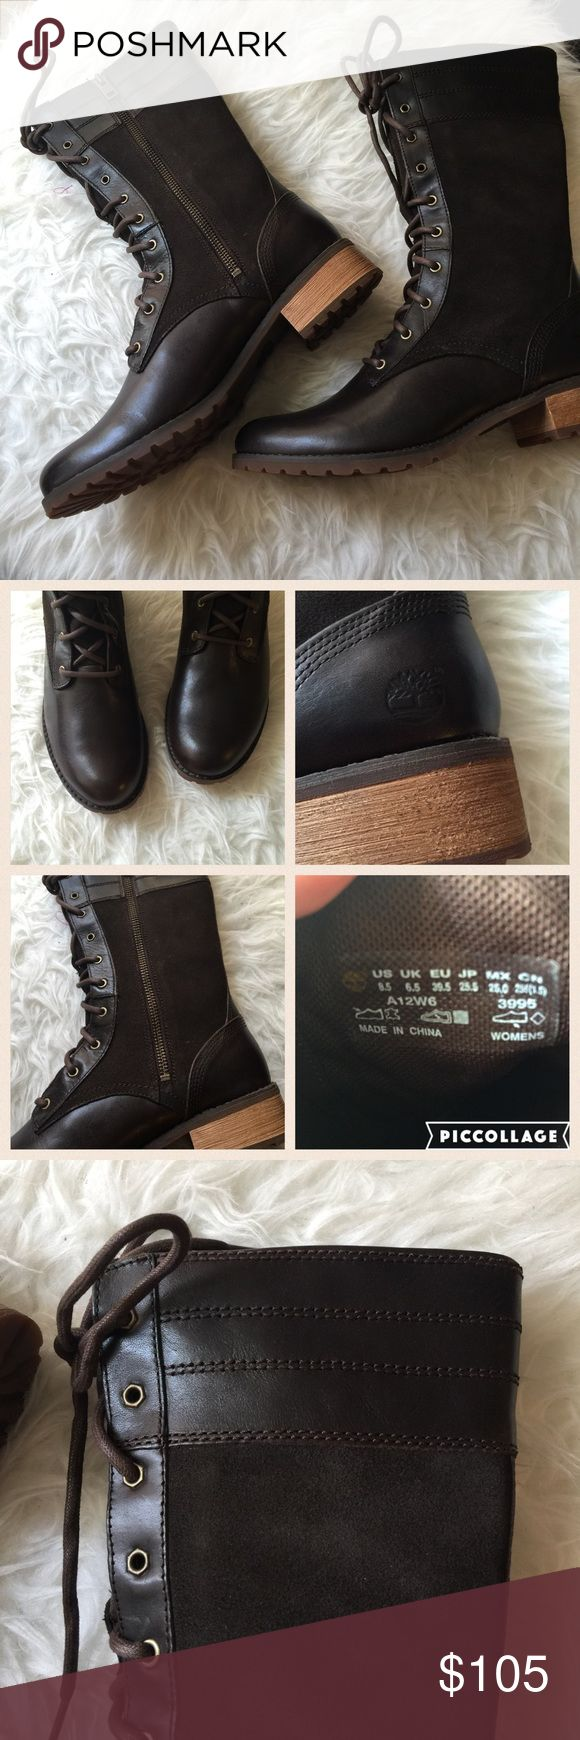 """NWB Timberland high boots Brand new in box.  - Round toe - Lace-up vamp - Leather construction - Topstitching - Side zip closure - Approx. 9.25"""" shaft height - Approx. 1.25"""" heel Timberland Shoes Combat & Moto Boots"""